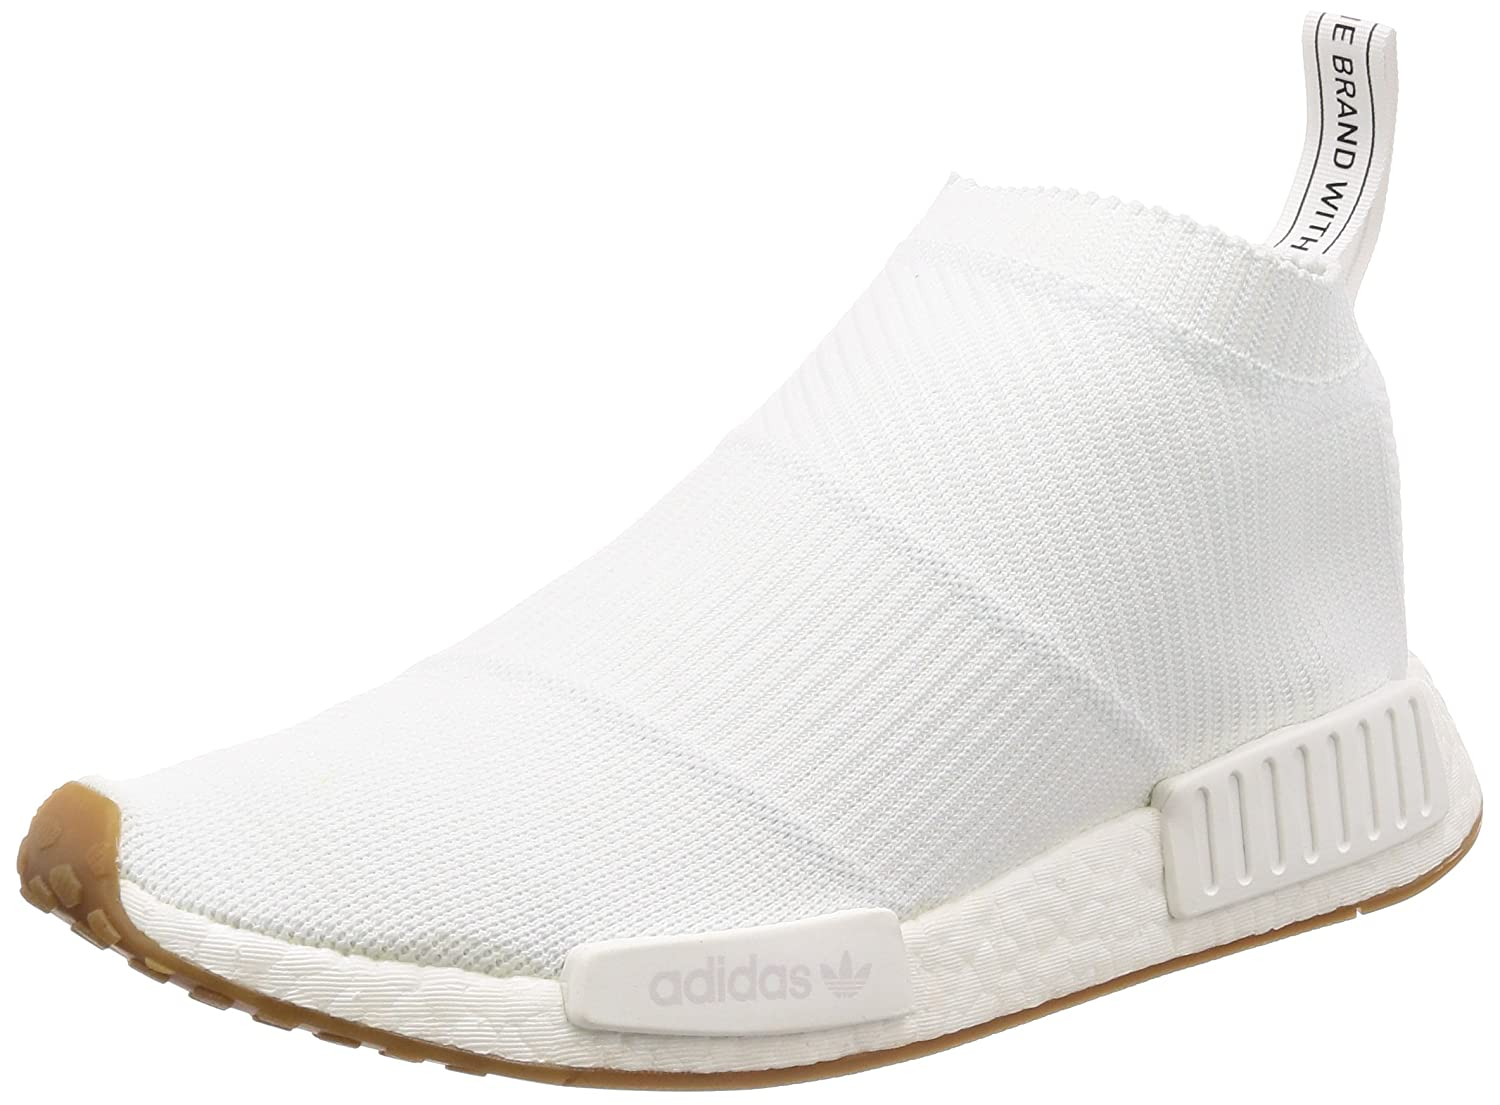 aaebd2ad3 adidas NMD City Sock CS1 PK Primeknit White Gum - White Gum Trainer Size  9.5 UK